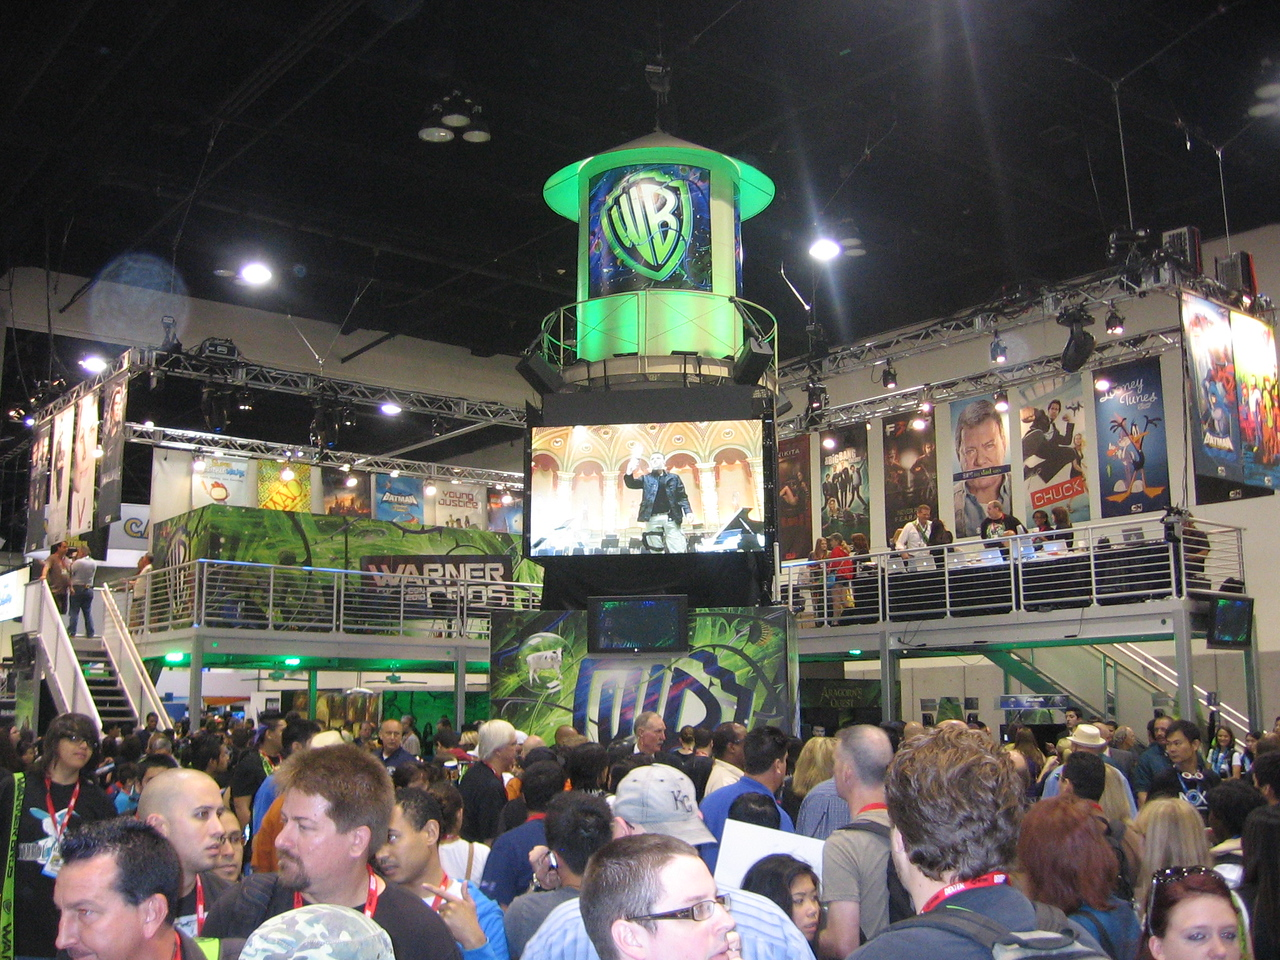 Working for Warner bros...one CRAZY place at Comic Con